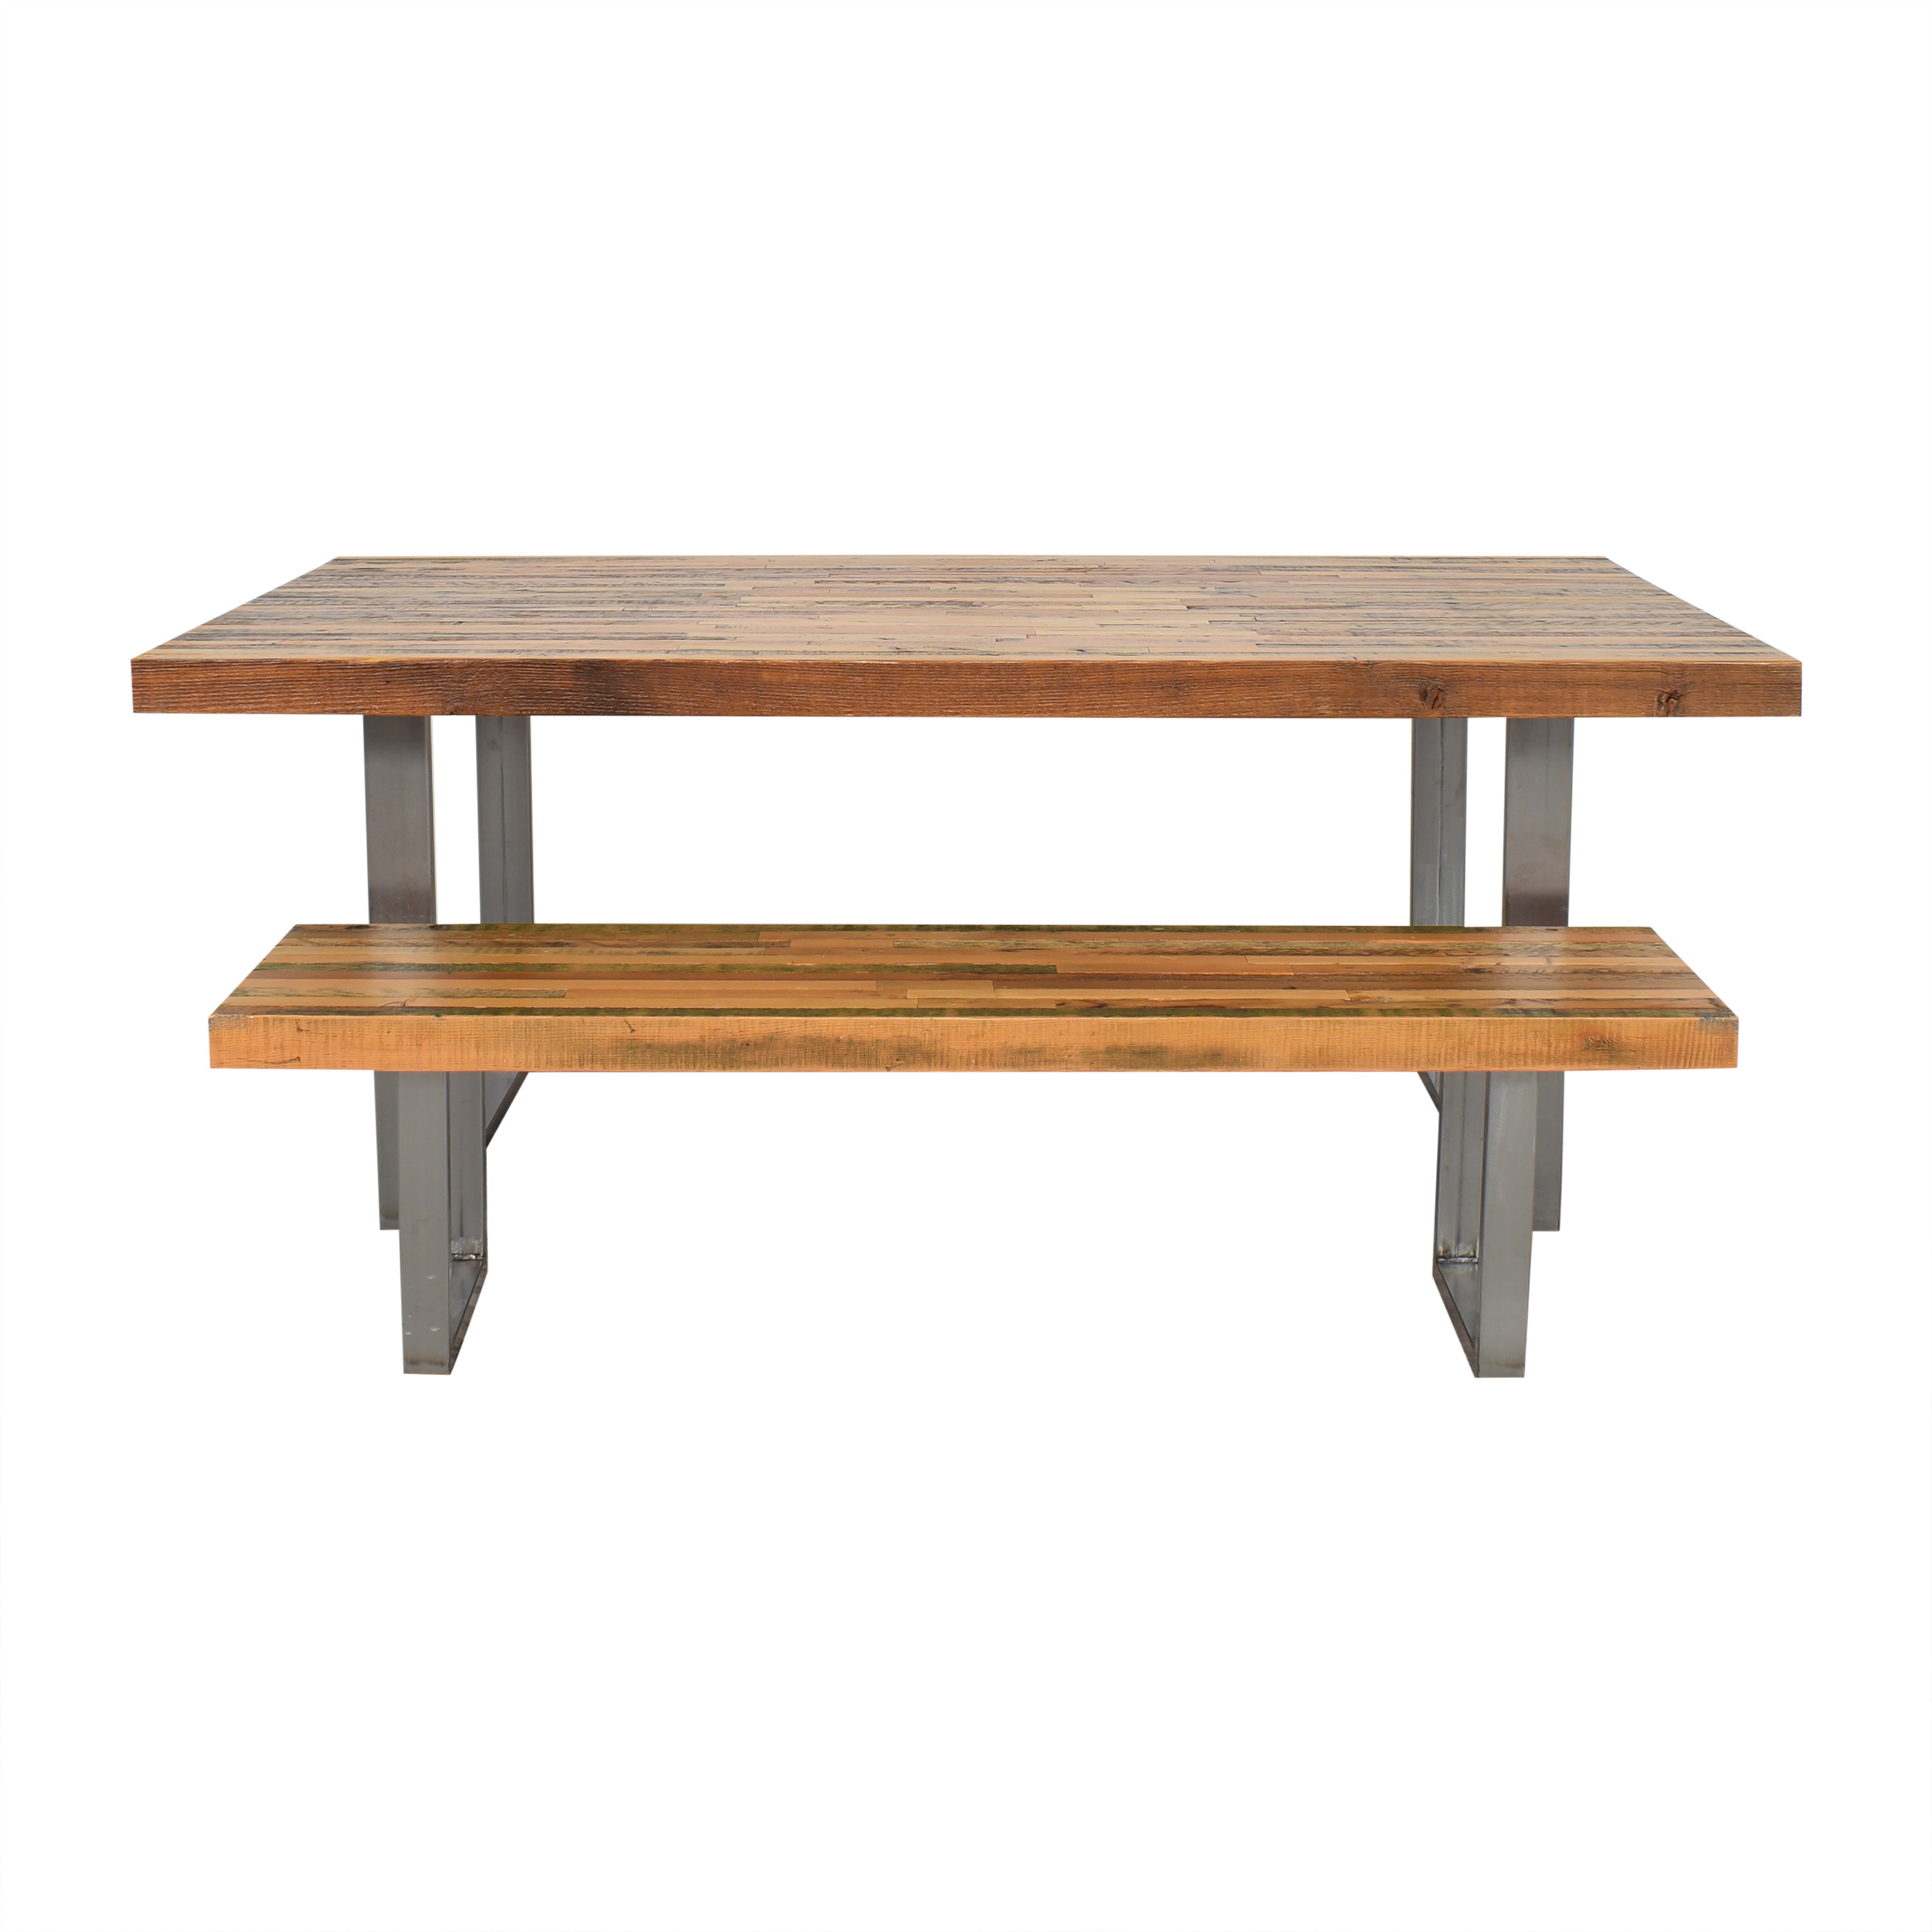 Kage Design Studio Kage Design Studio Modern Industrial Reclaimed Wood Table with Bench on sale